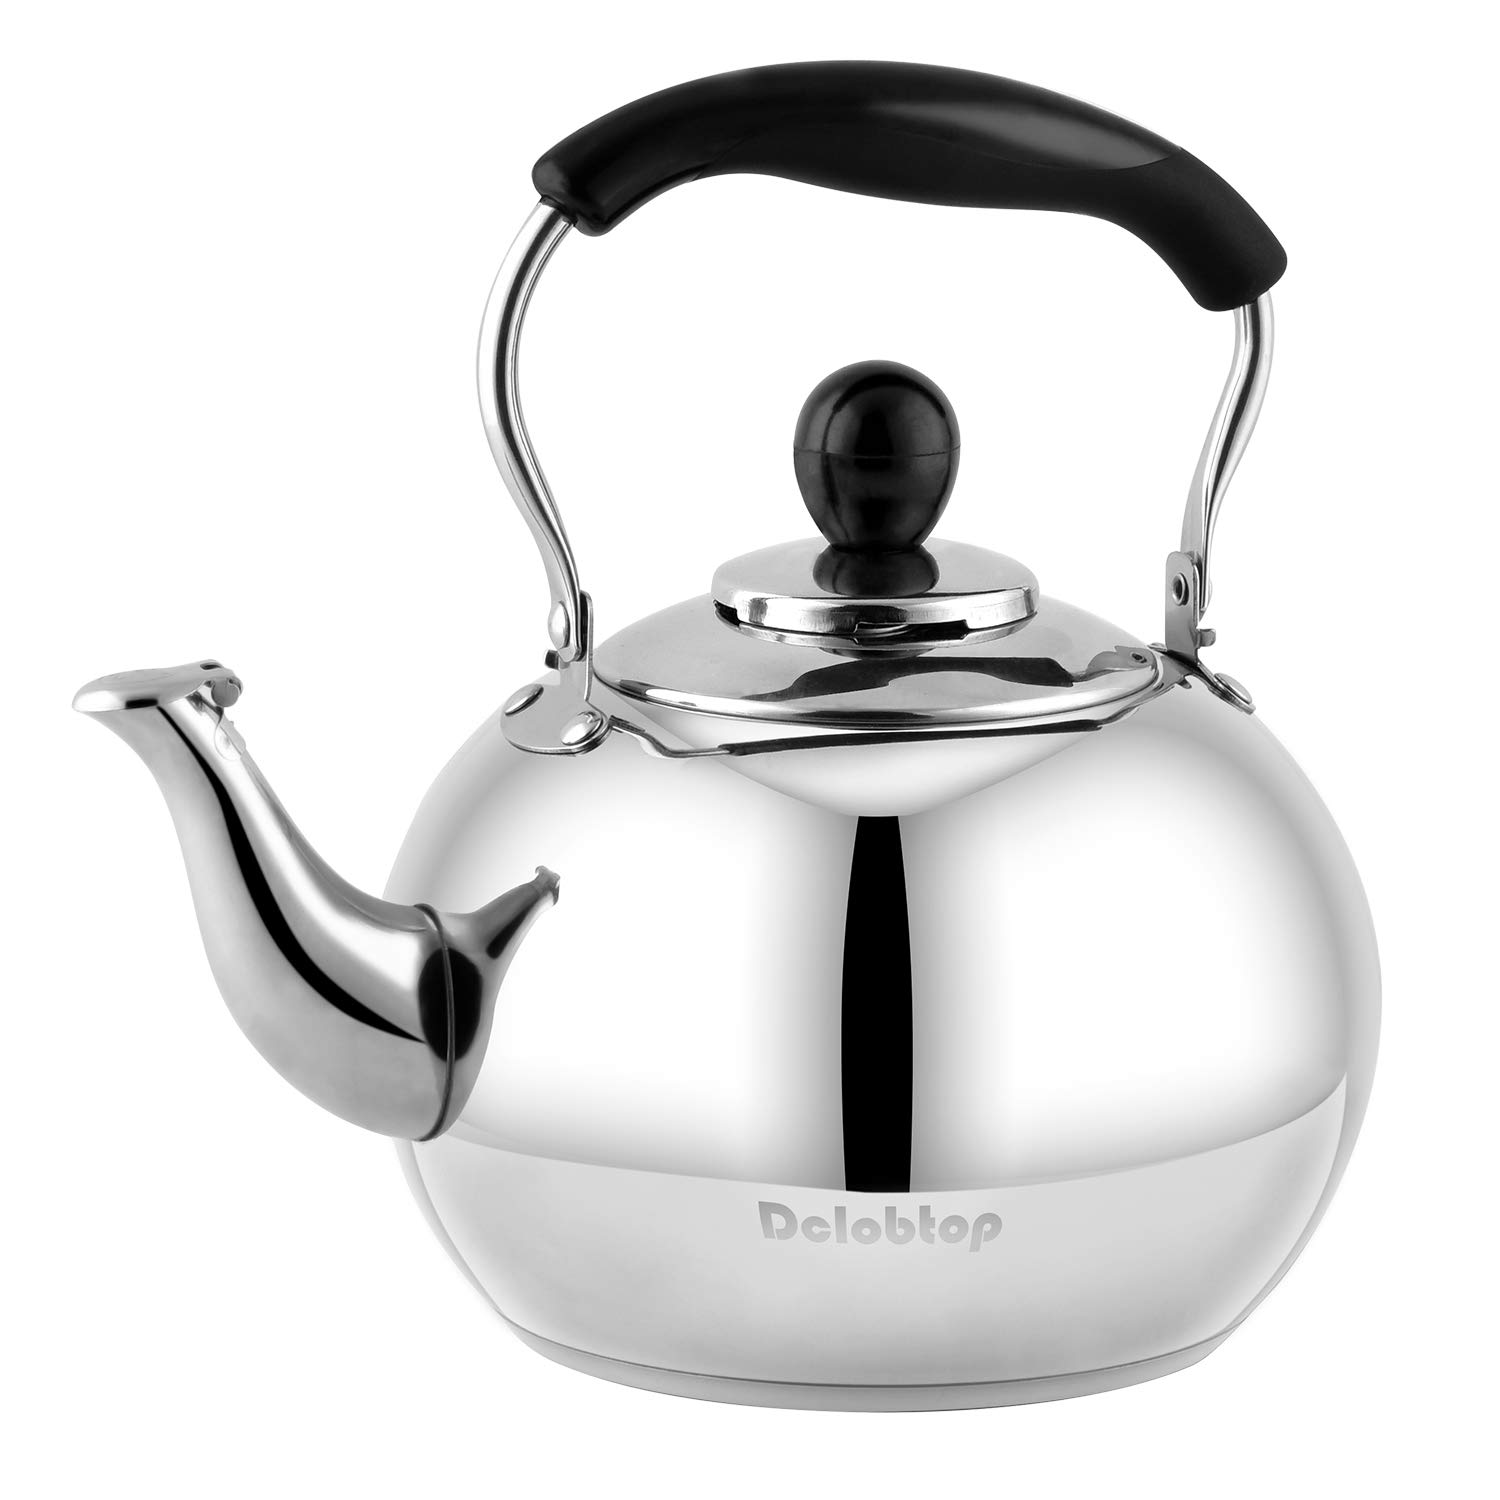 Stove Top Whistling Tea Kettle 2.5 Quart Classic teapot appearance Culinary Grade Stainless Steel Teapot Composite process bottom by DclobTop